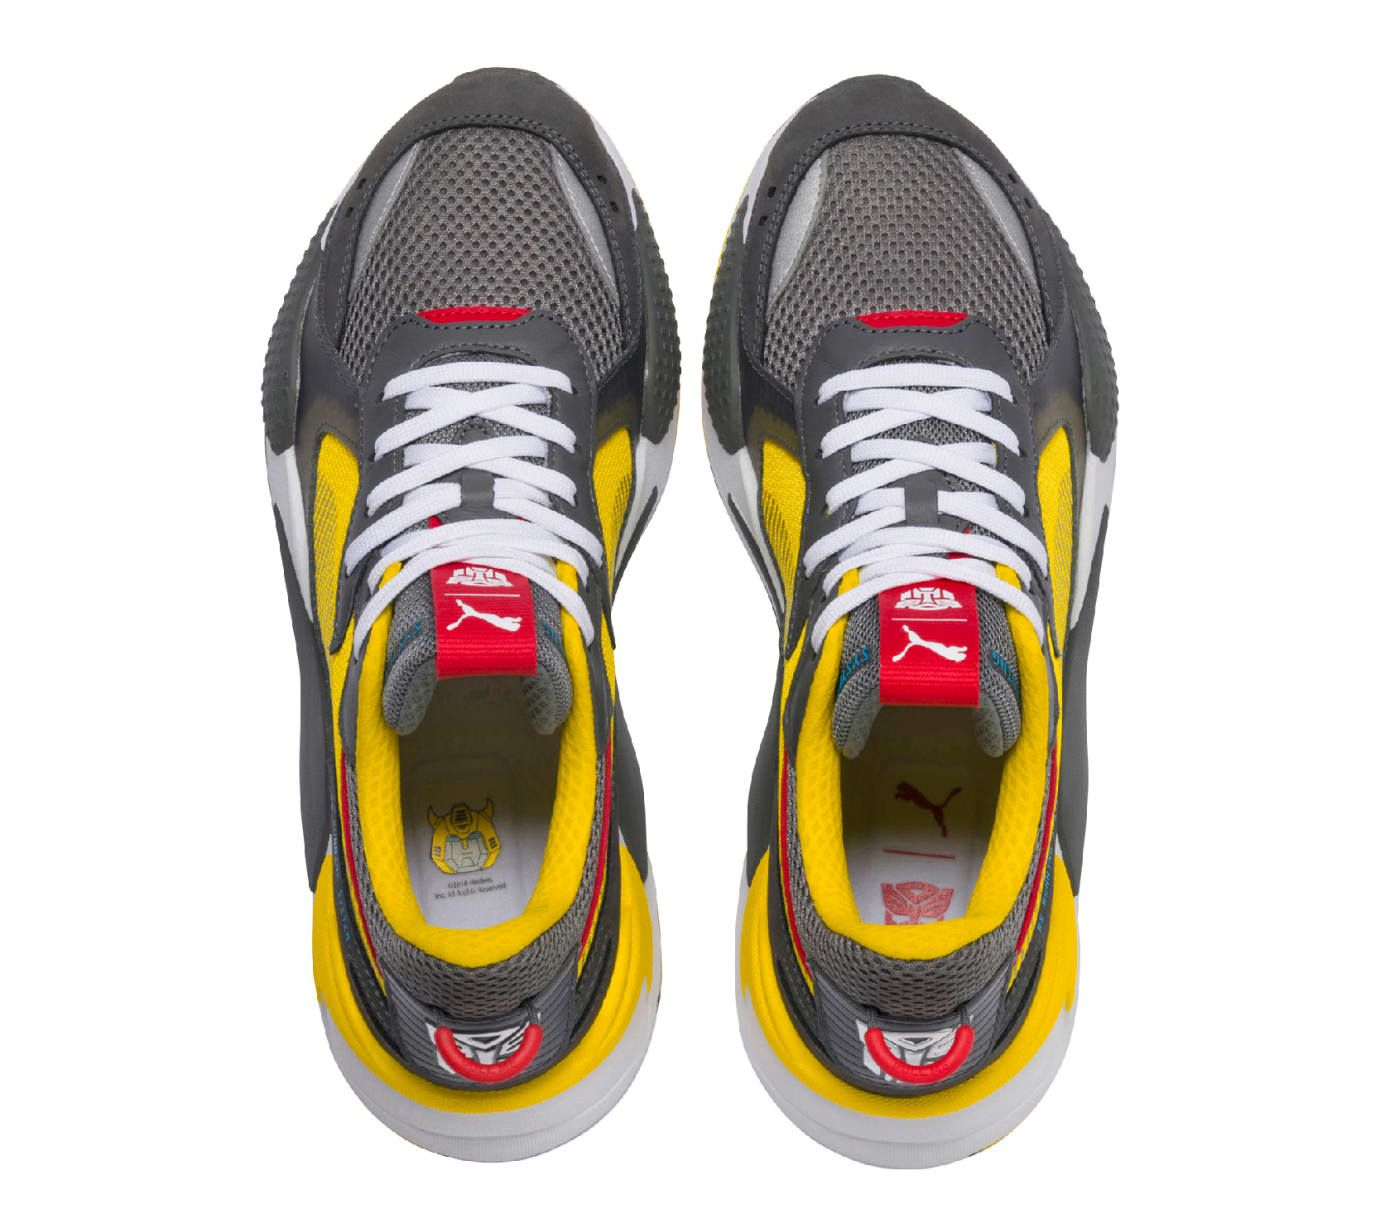 1943a519540a49 Hasbro x Puma RS-X Transformers 'Bumblebee' (Top) | sneakerhead in ...